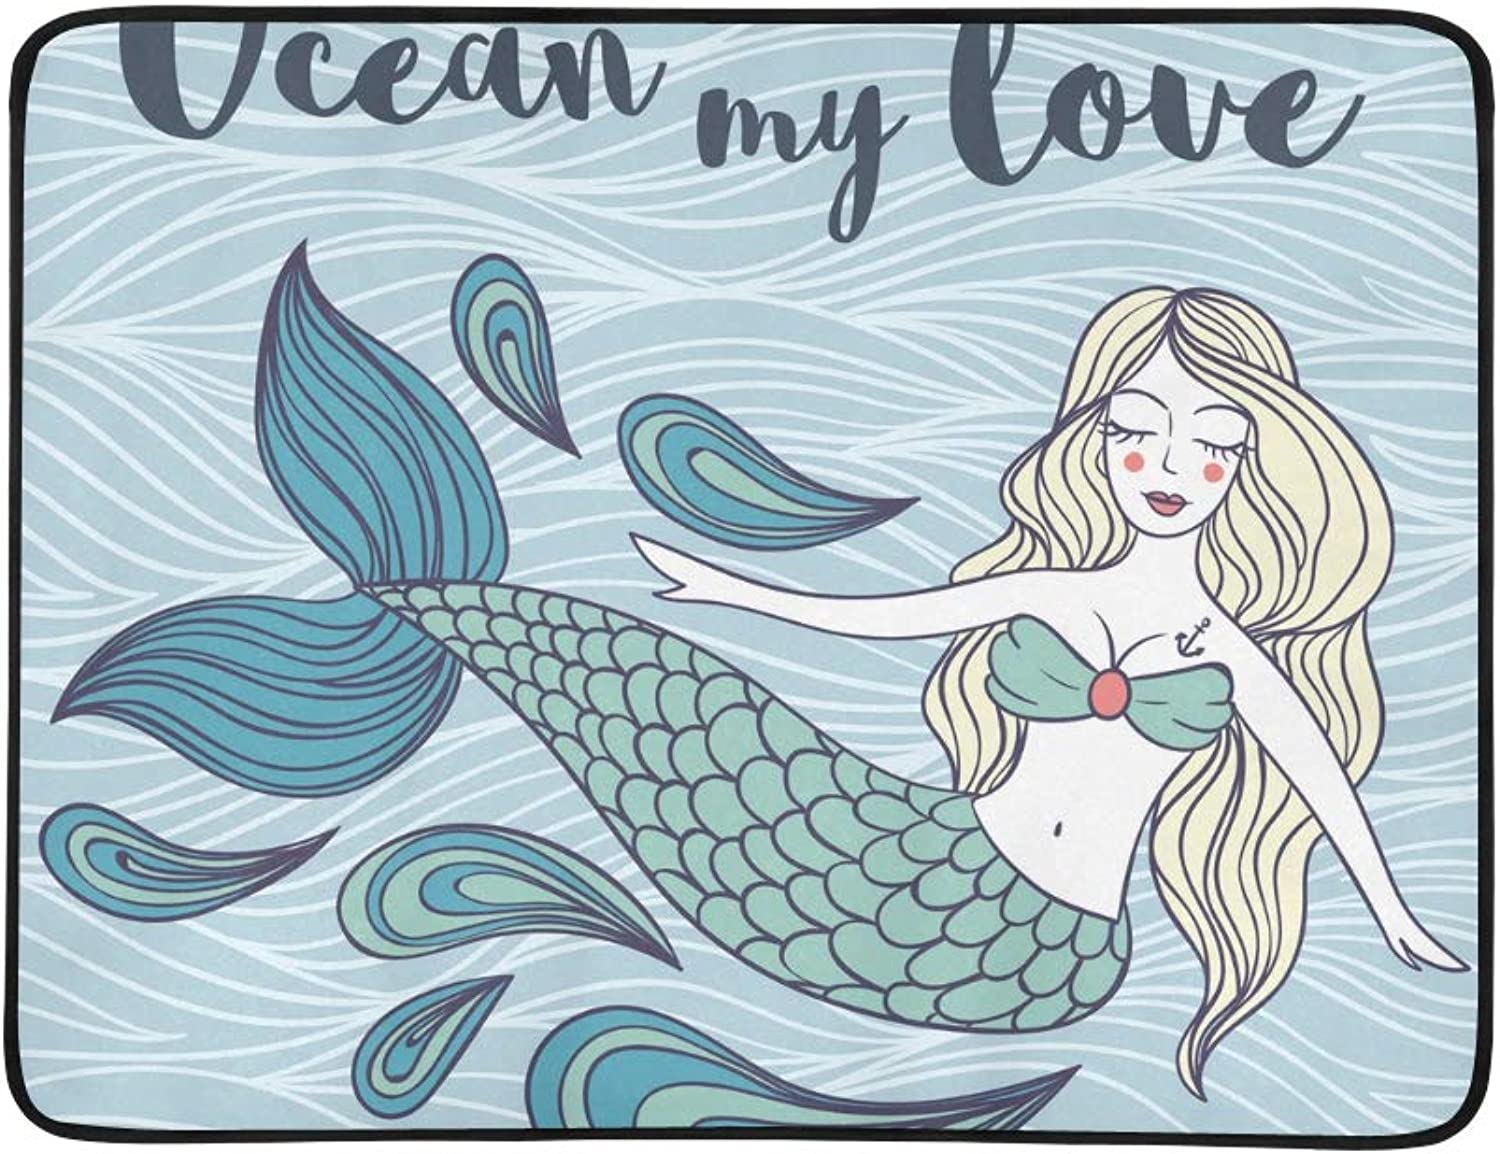 Beautiful Cute Mystical Mermaid Pattern Portable and Foldable Blanket Mat 60x78 Inch Handy Mat for Camping Picnic Beach Indoor Outdoor Travel